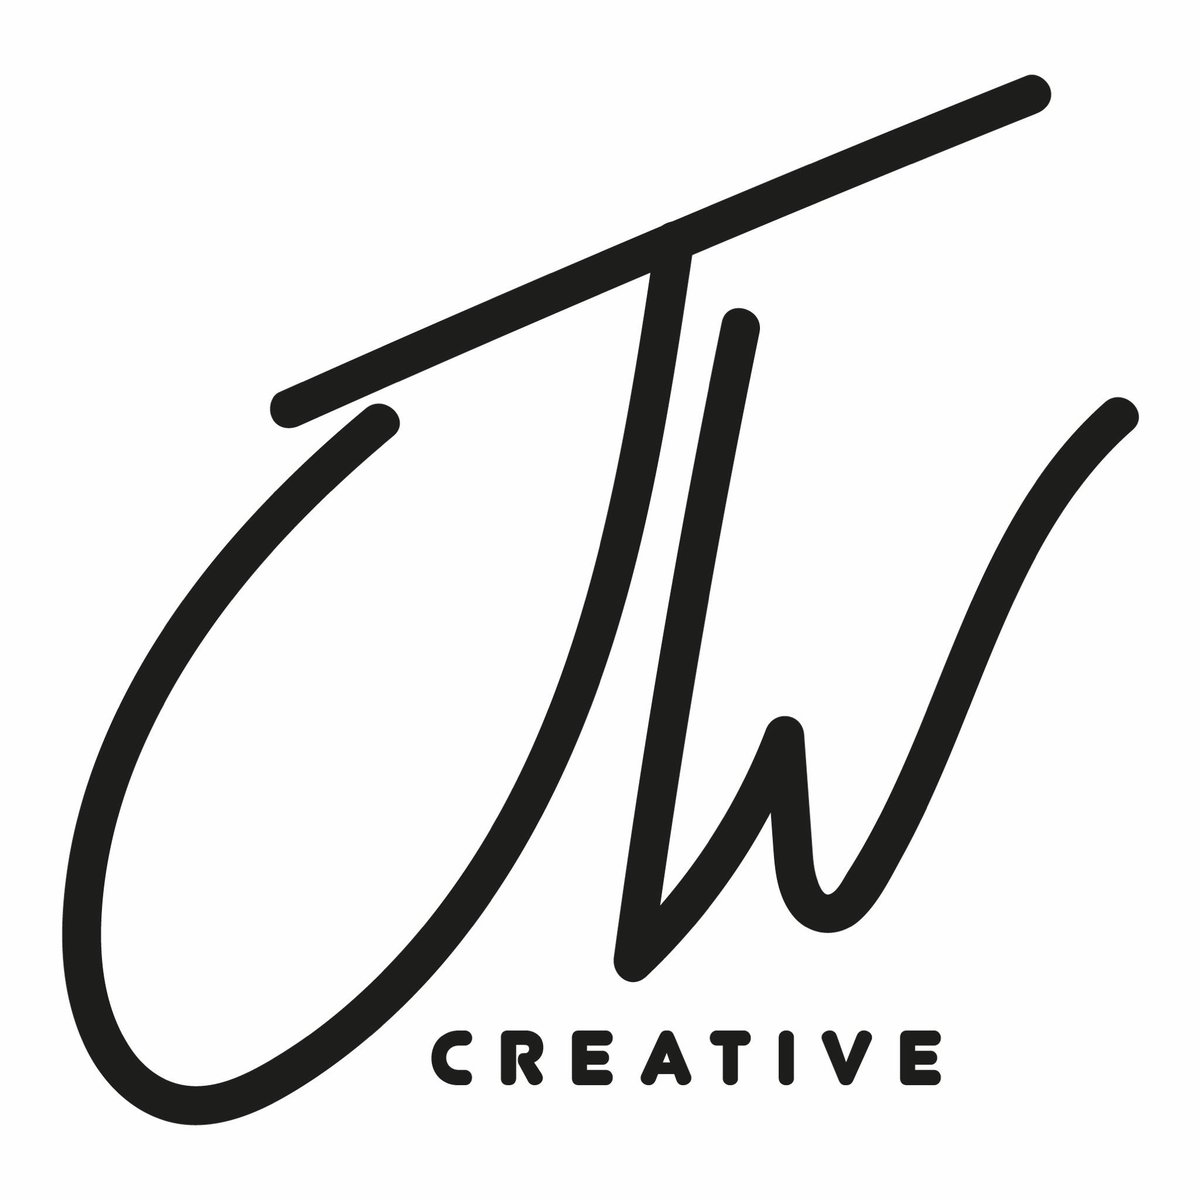 Jonathan Wood Creative Designer On Twitter Potential New Personal Logo Feedback Is Welcomegraphicdesign Design Designed Designs